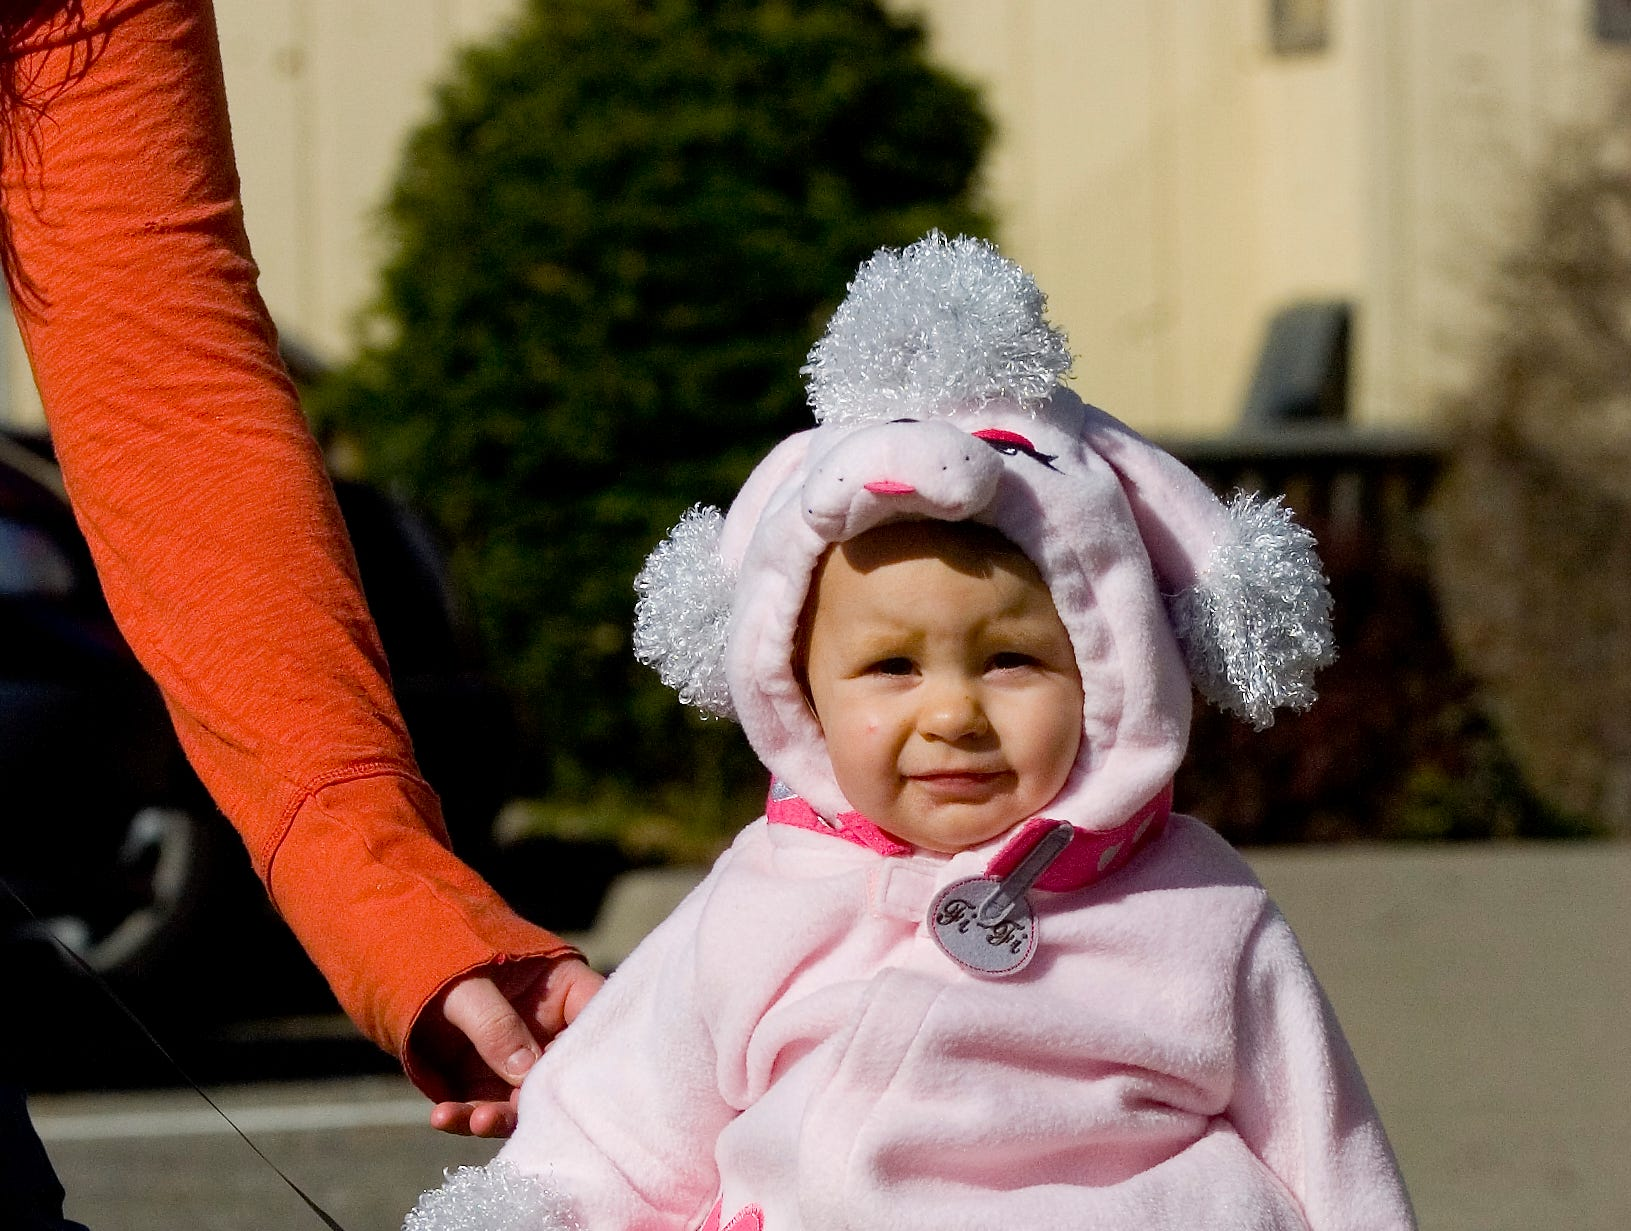 2008: One-year-old Emma Meara is dress up as a poodle for Halloween on Firday. She is the daughter of Danielle Sculley of Endicott.